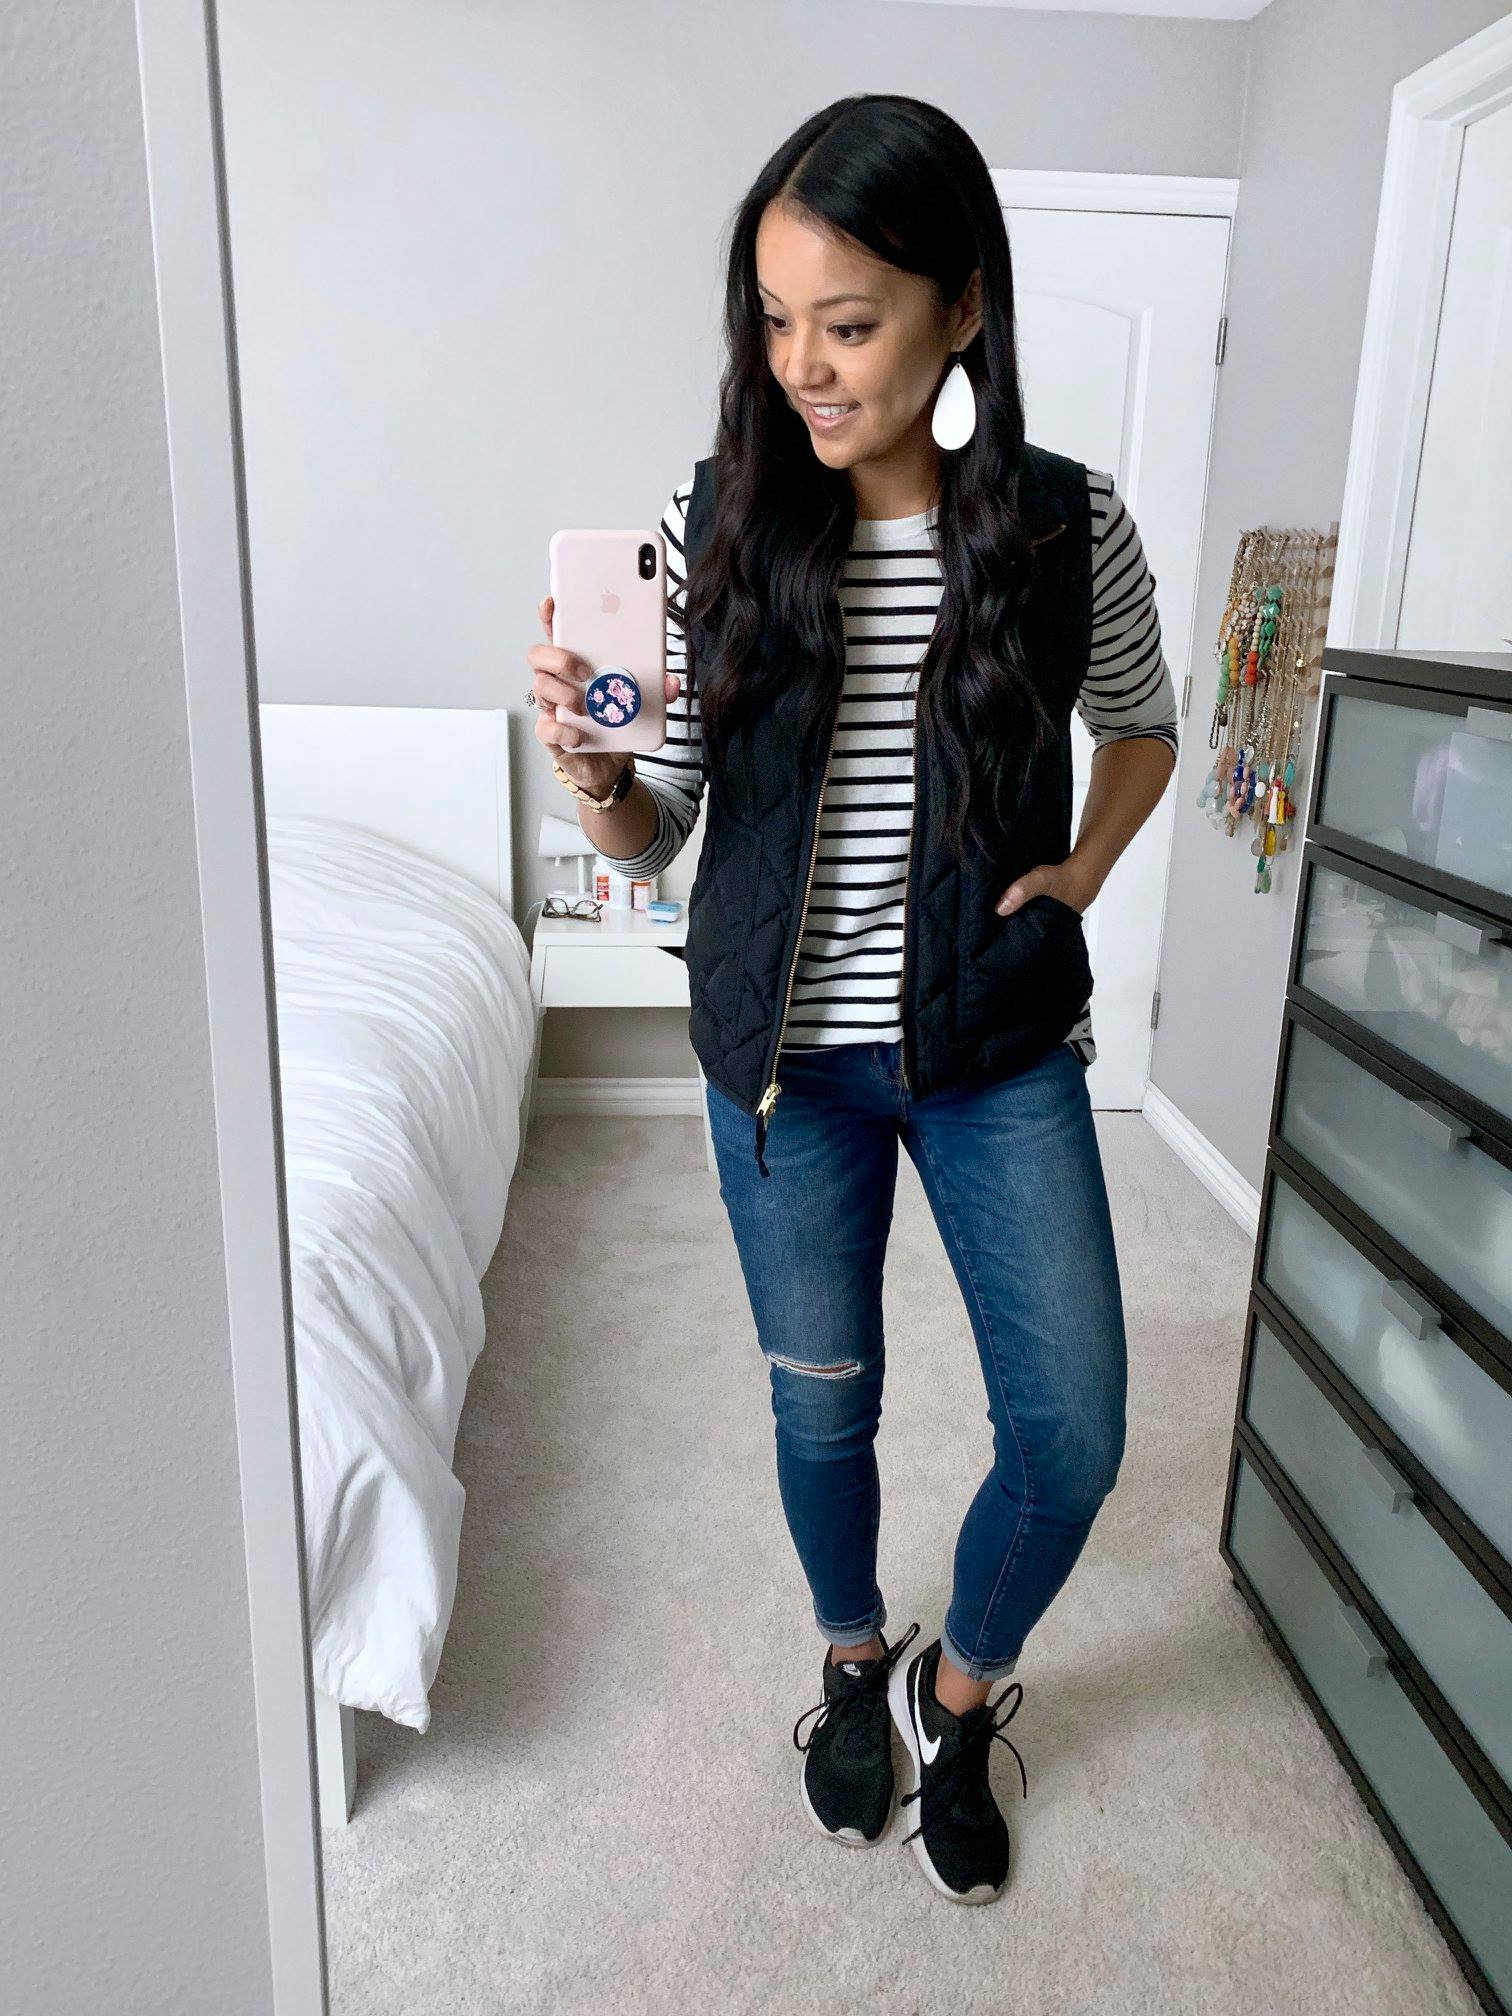 Black Vest + Striped Top + Distressed Jeans + Black Sneakers + White Earrings